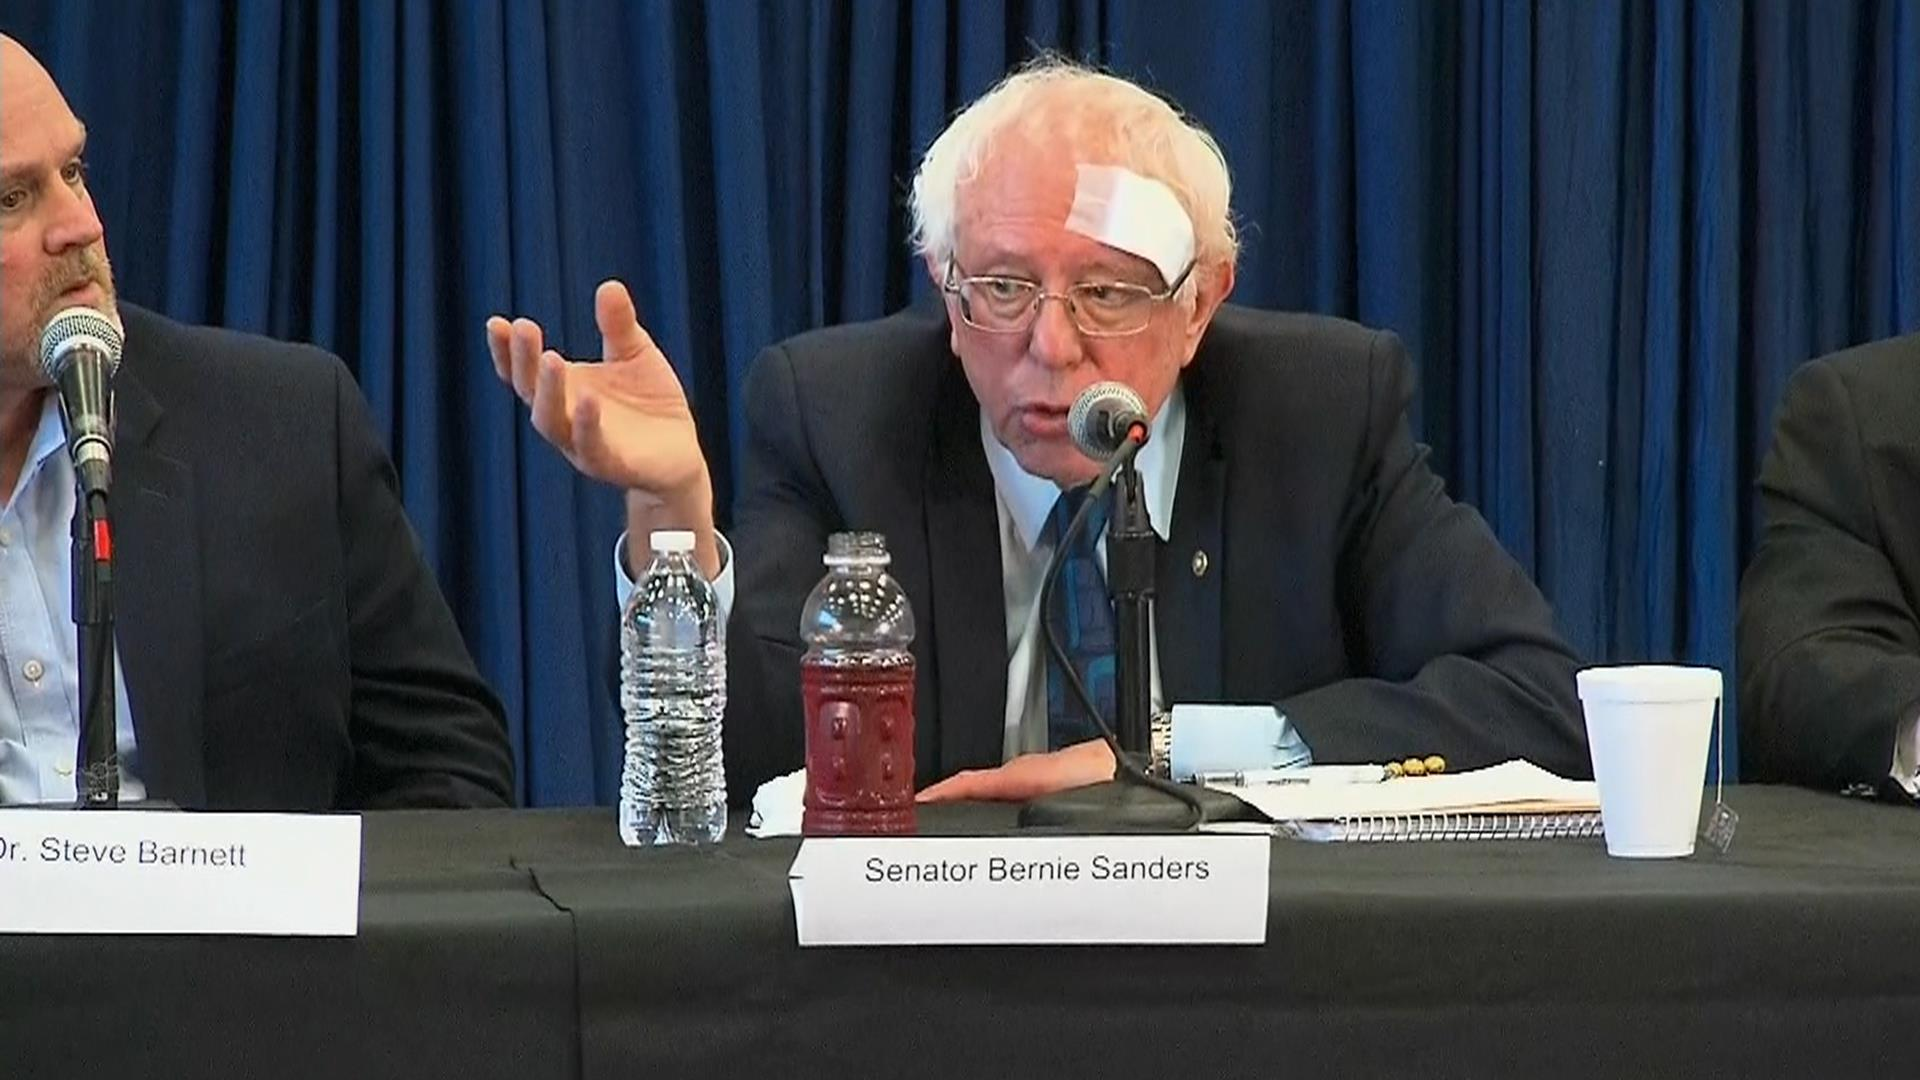 Bernie Sanders, wearing a bandage, discusses 'Medicare for All'